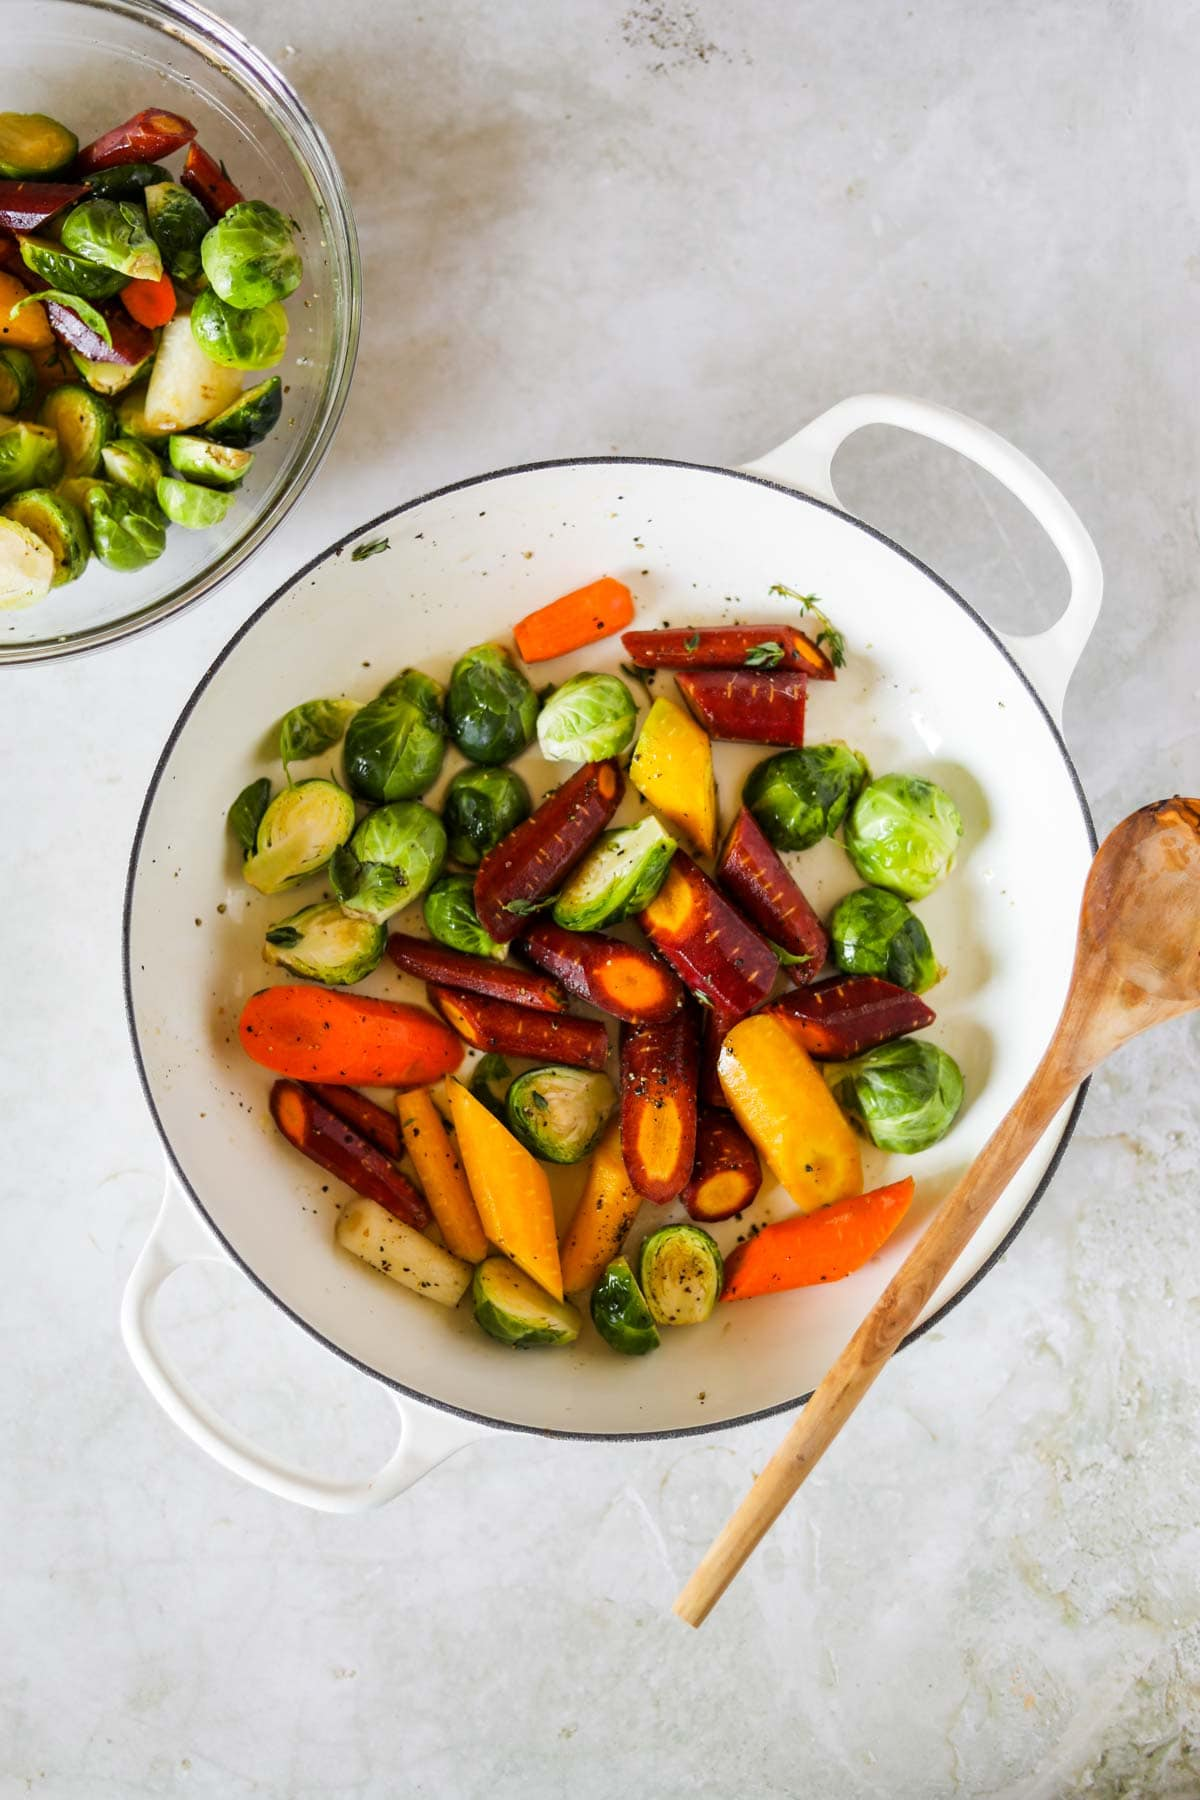 Brussel Sprouts and Carrots in a white Le Creuset braiser with a wooden spoon.